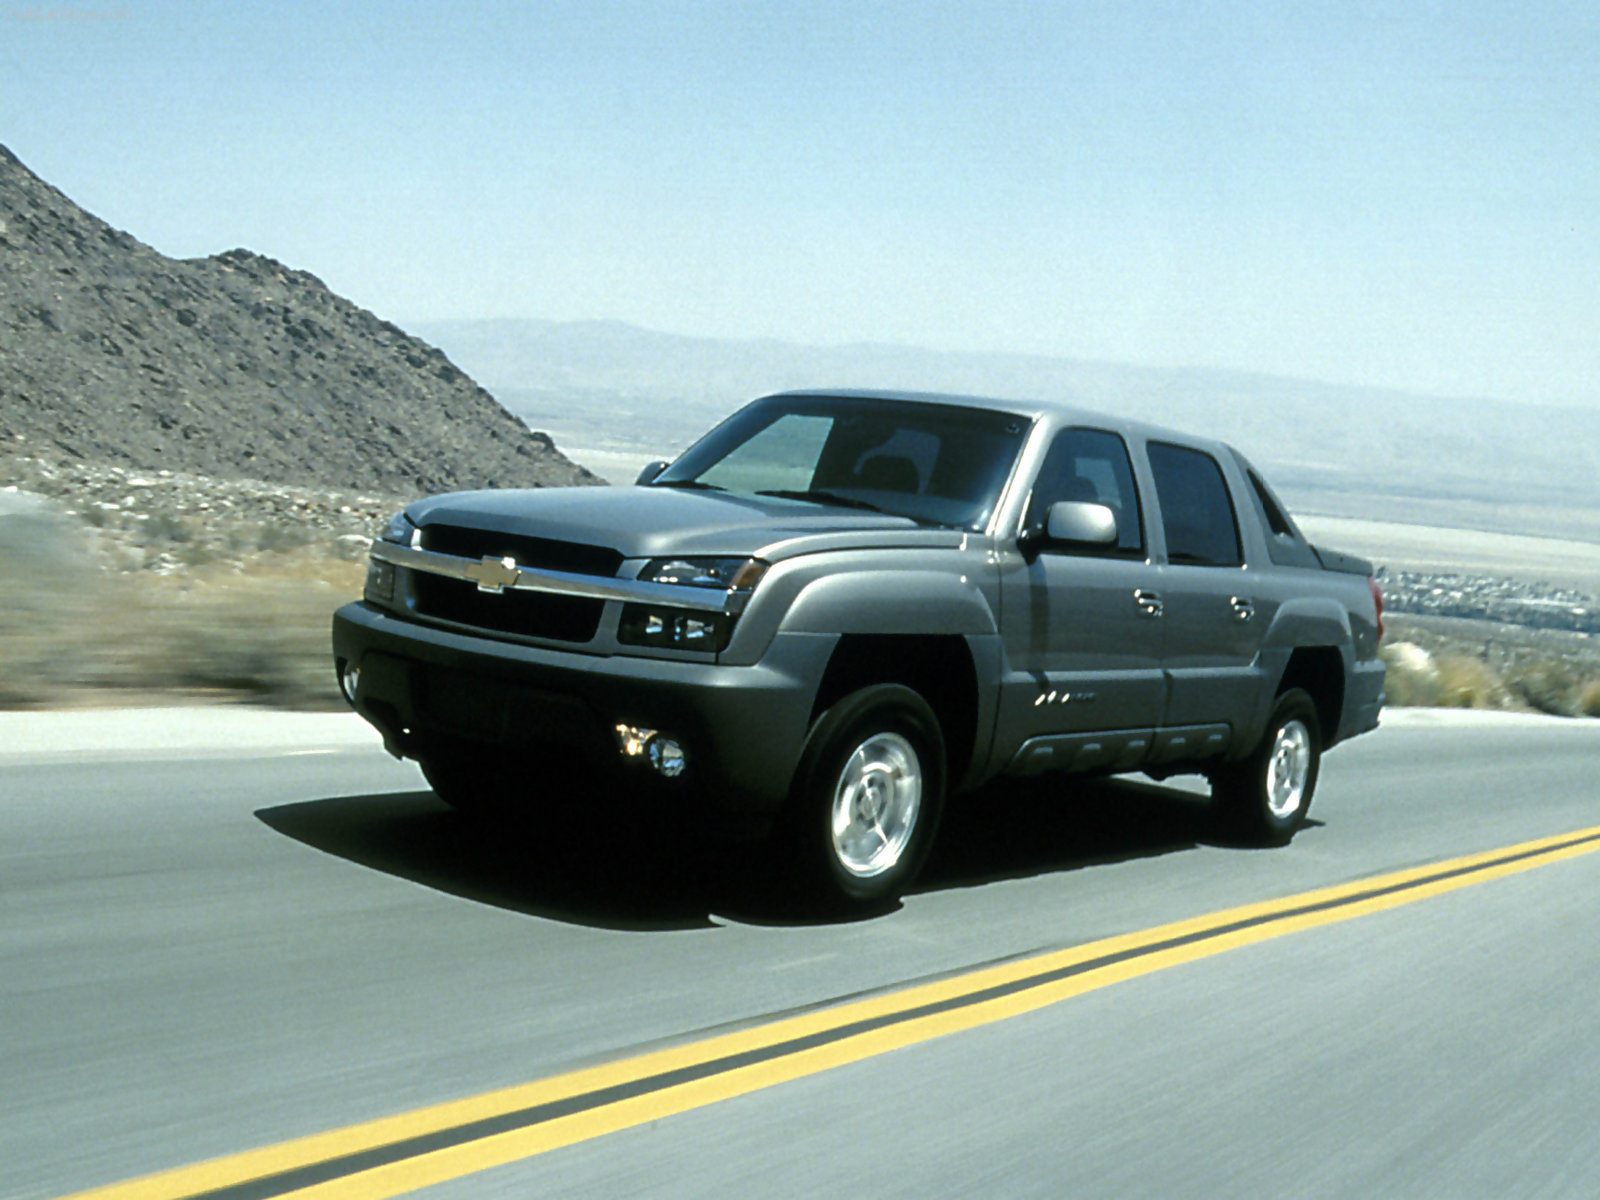 chevrolet images chevrolet avalanche 2002 hd wallpaper and background photos 8115926. Black Bedroom Furniture Sets. Home Design Ideas